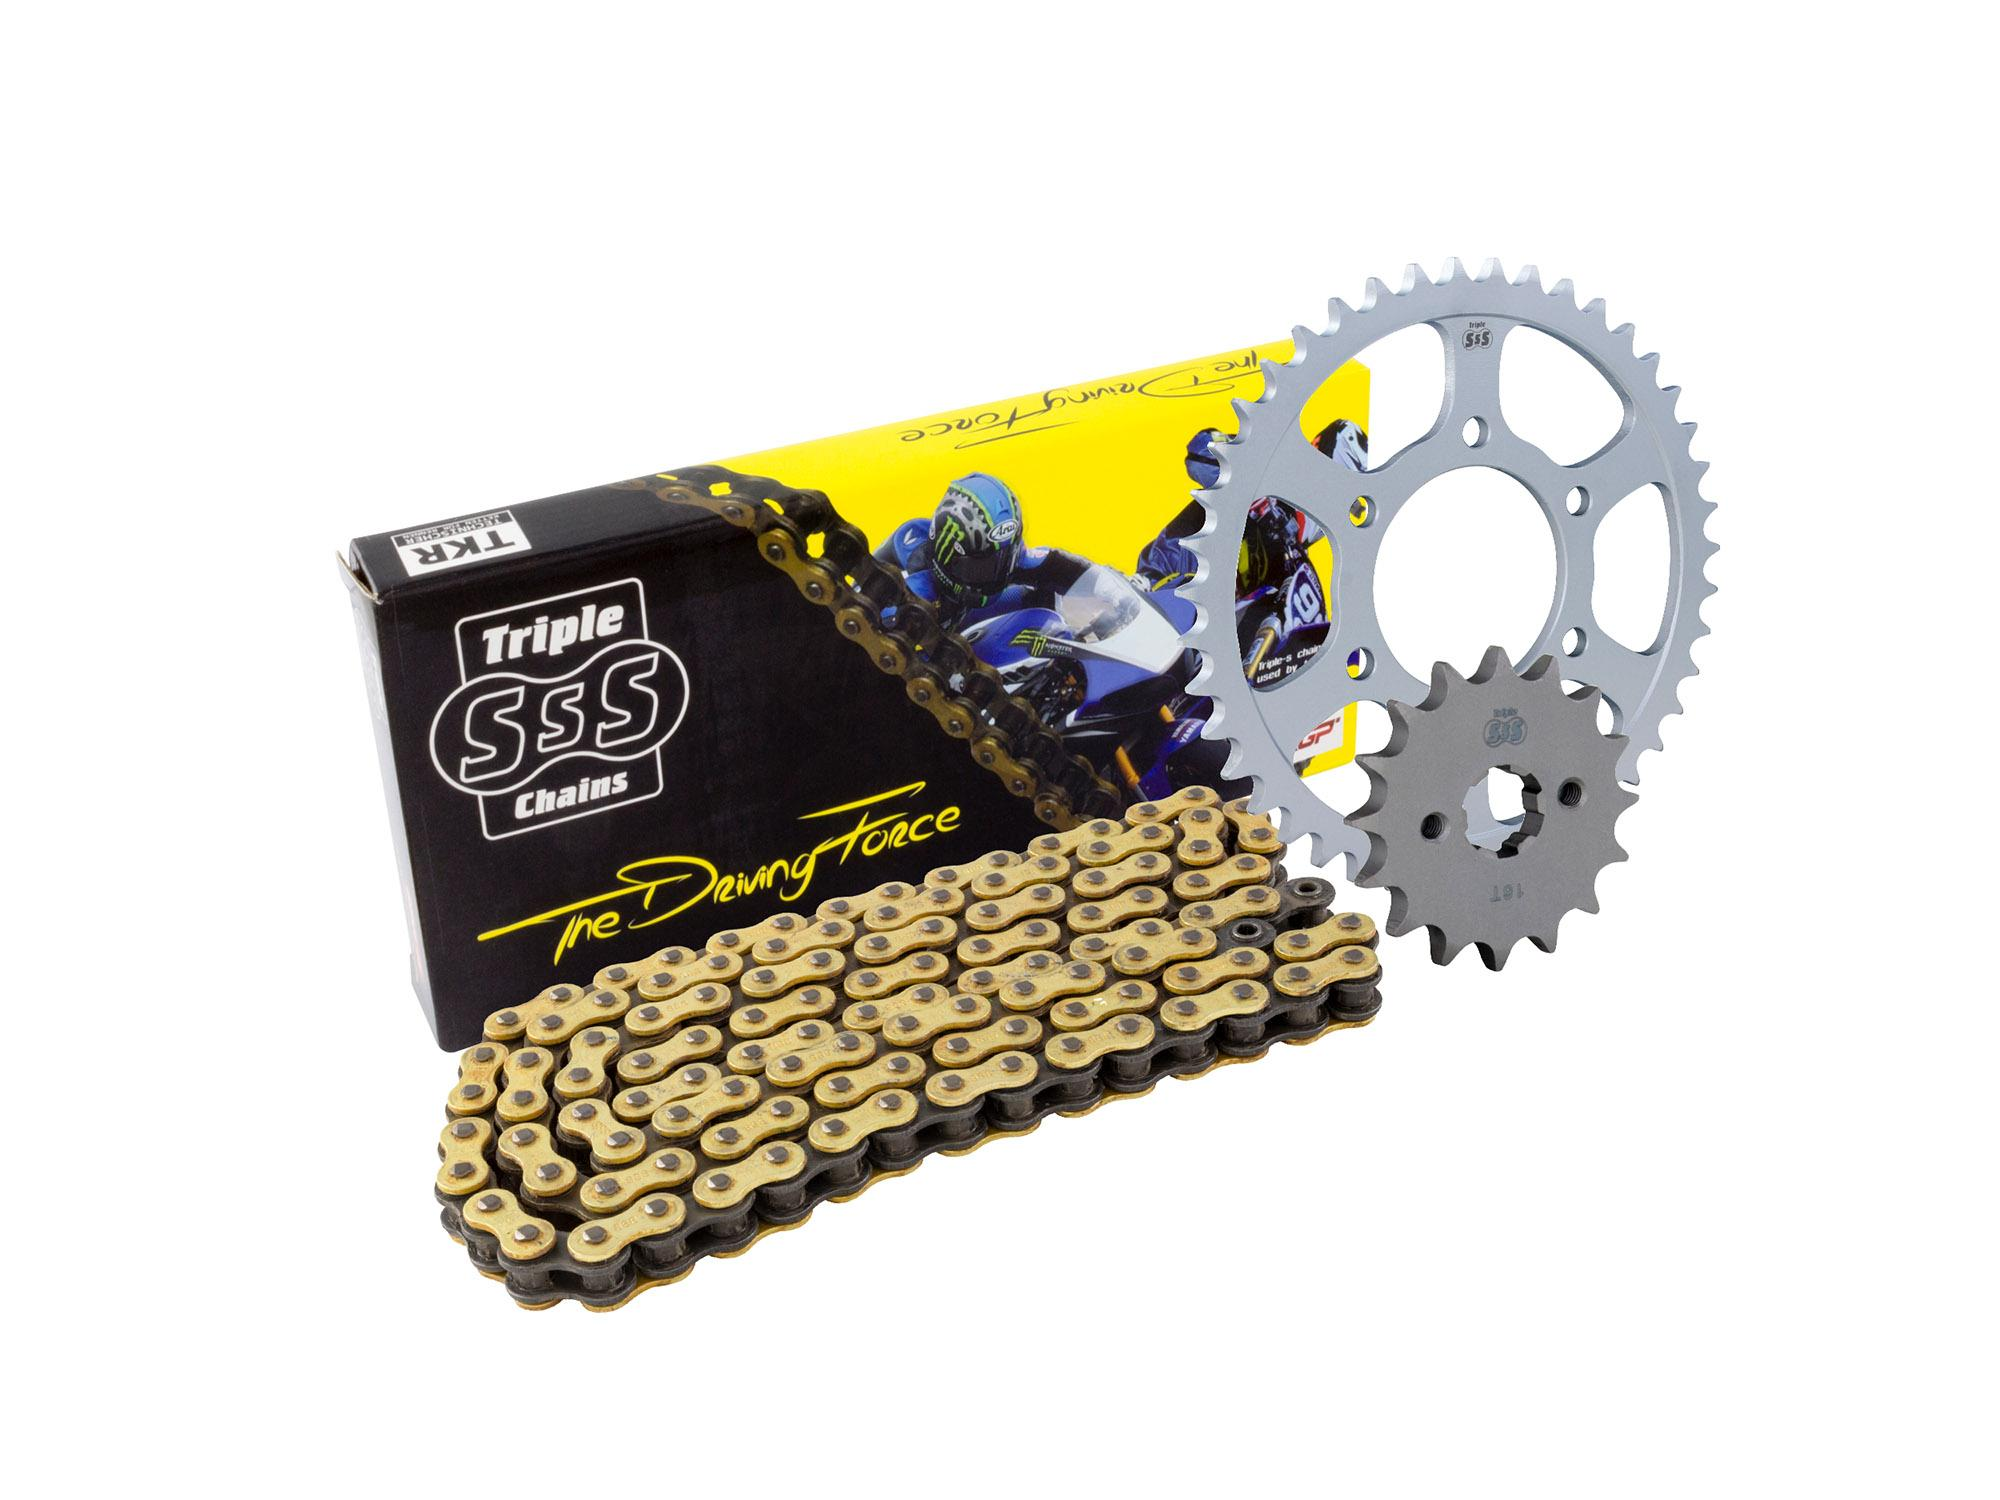 Triumph 865 America 13-15 Chain & Sprocket Kit: 18T Front, 42T Rear, HD O-Ring Gold Chain 525H 112 Link